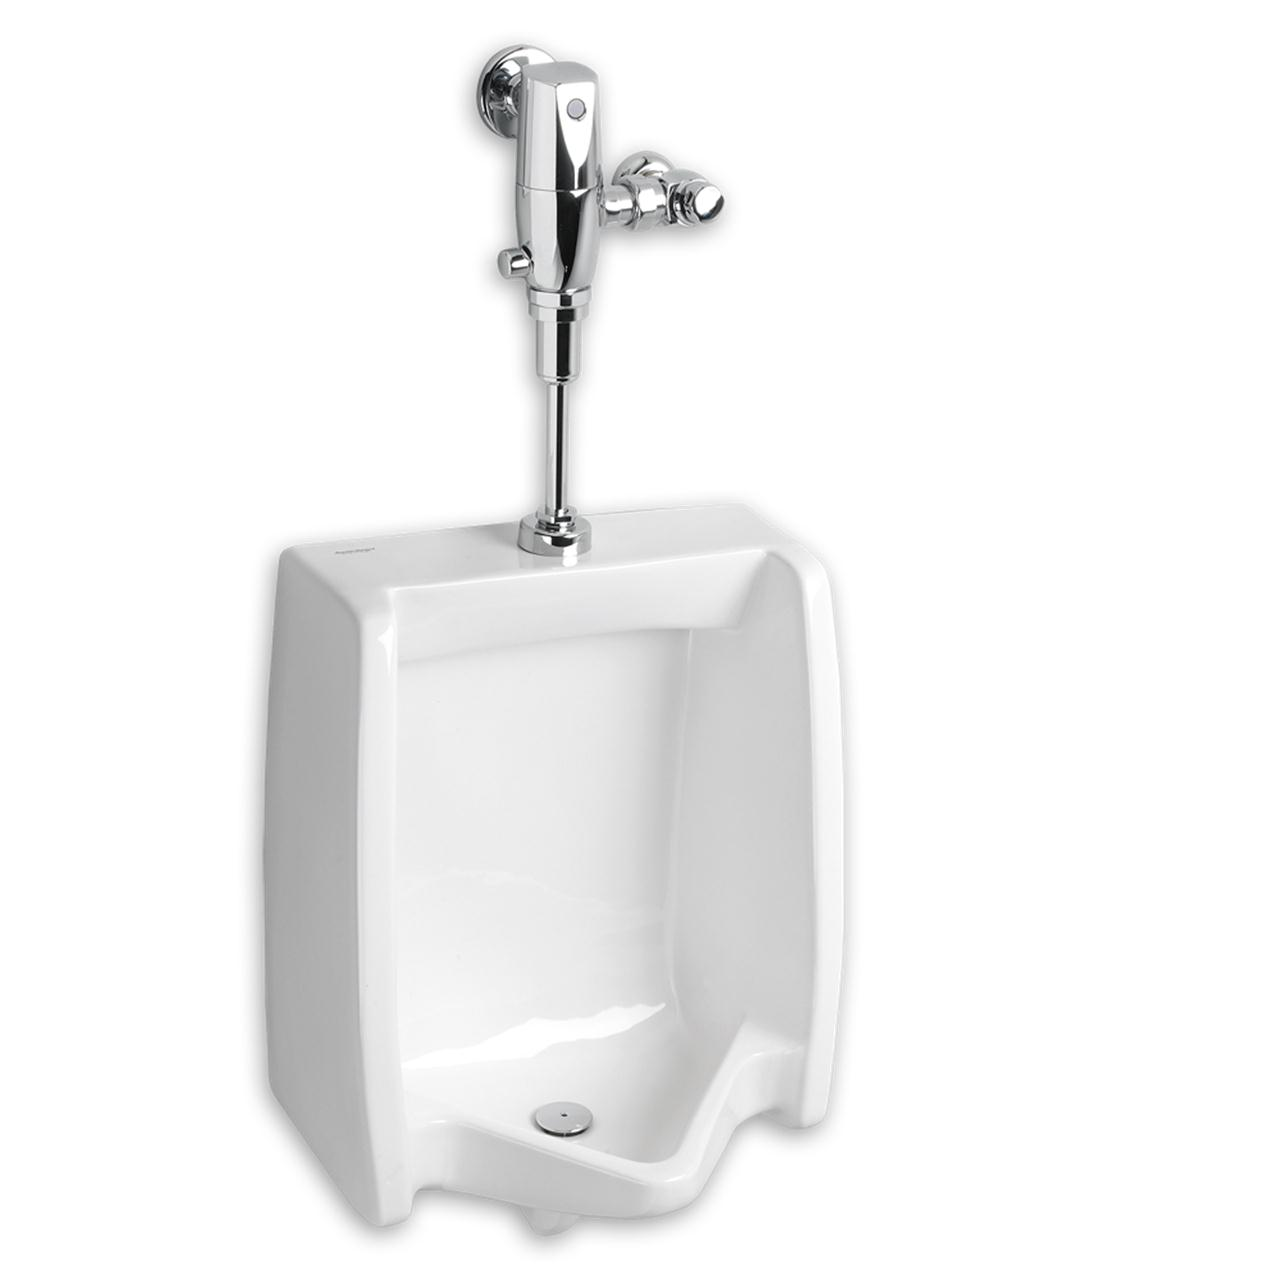 WASHBROOK FLOWISE WASHOUT BACK SPUD URINAL, 0.125 TO 1.0 GPF, WHITE